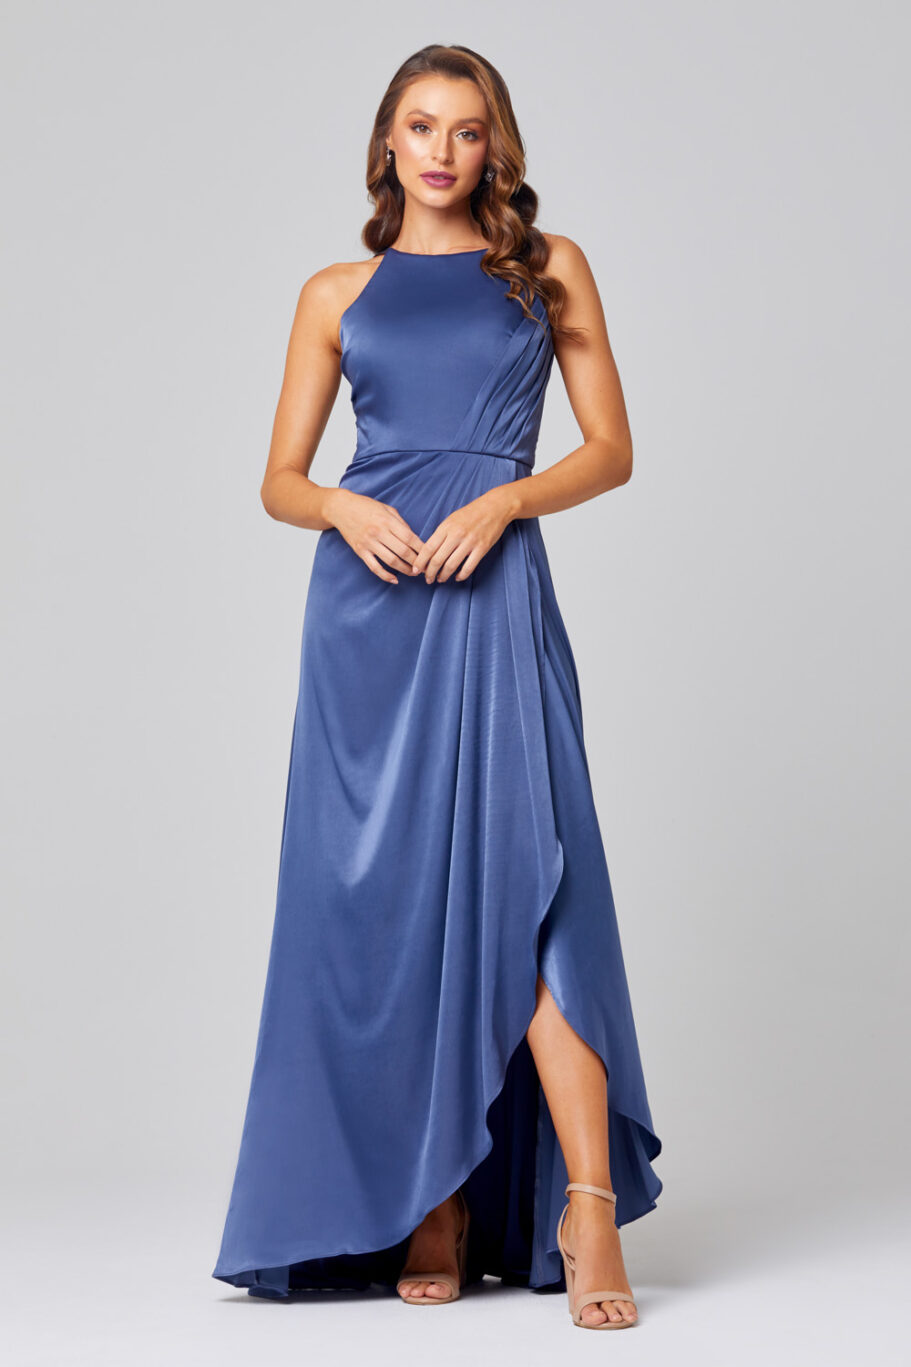 Chelsea High Neck Bridesmaid Dress - TO854